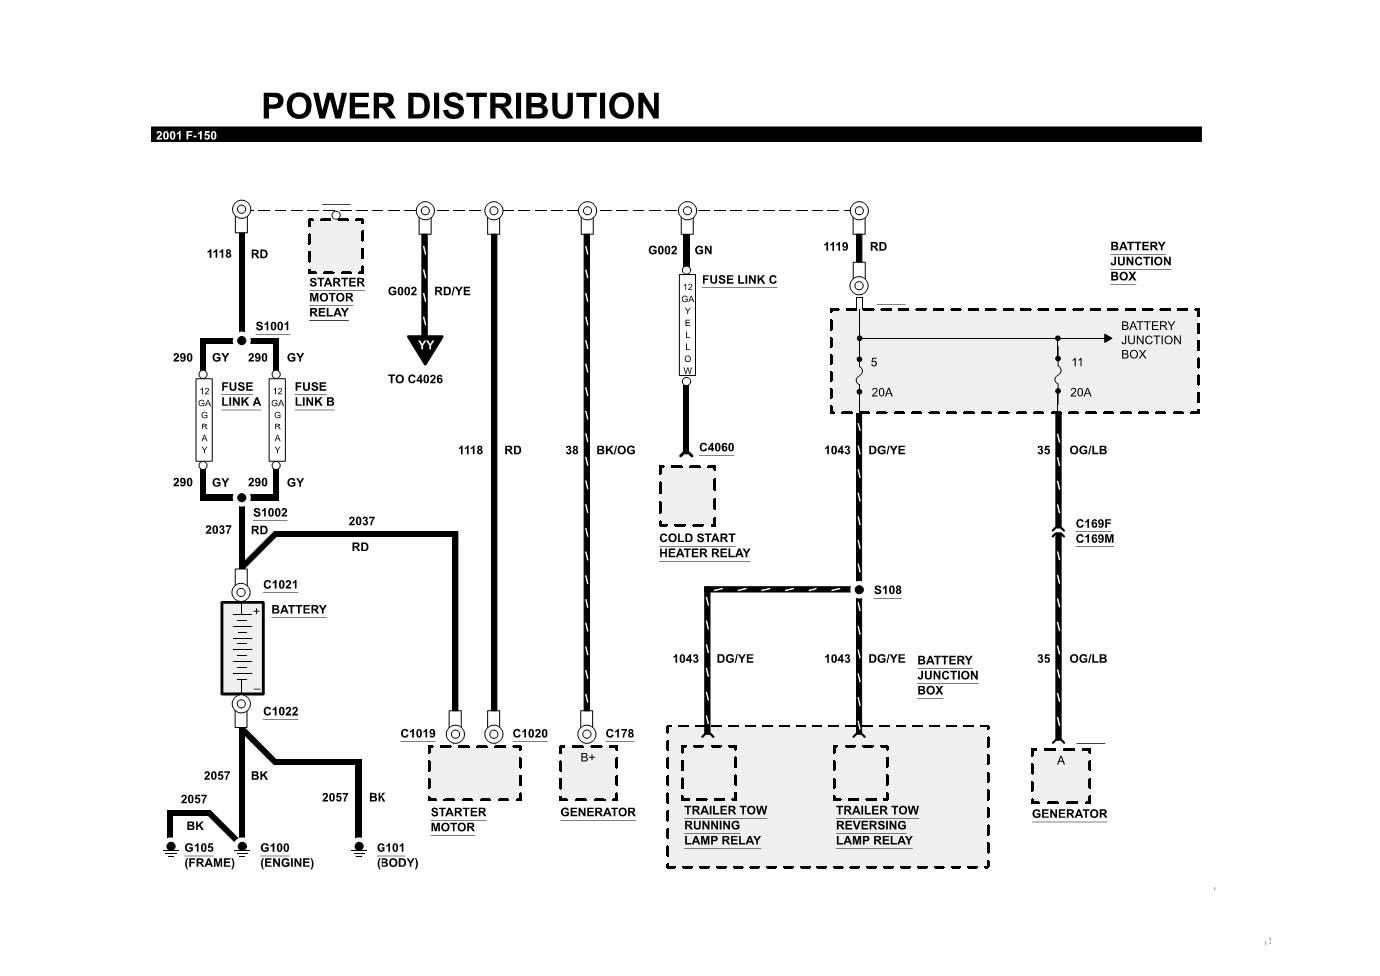 2005 taurus fuel pump wiring diagram - smart radio wiring diagram -  schematics-source.tukune.jeanjaures37.fr  wiring diagram resource